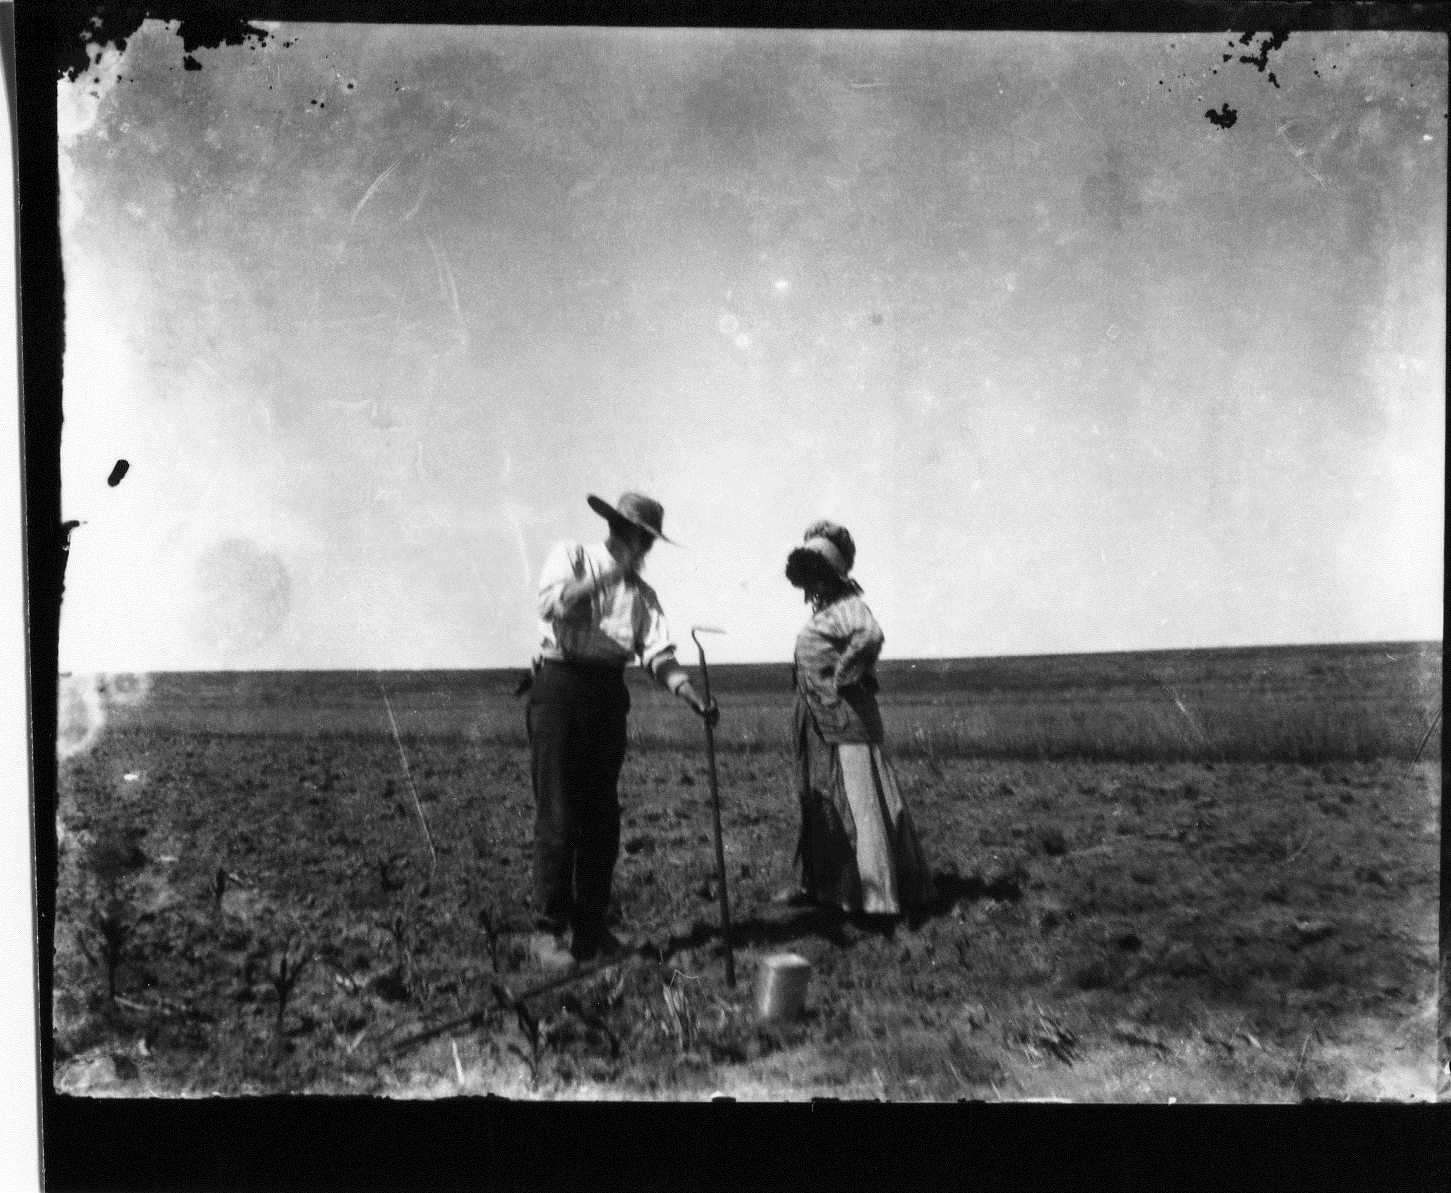 photo of Unidentified Man and Woman in Crop Field